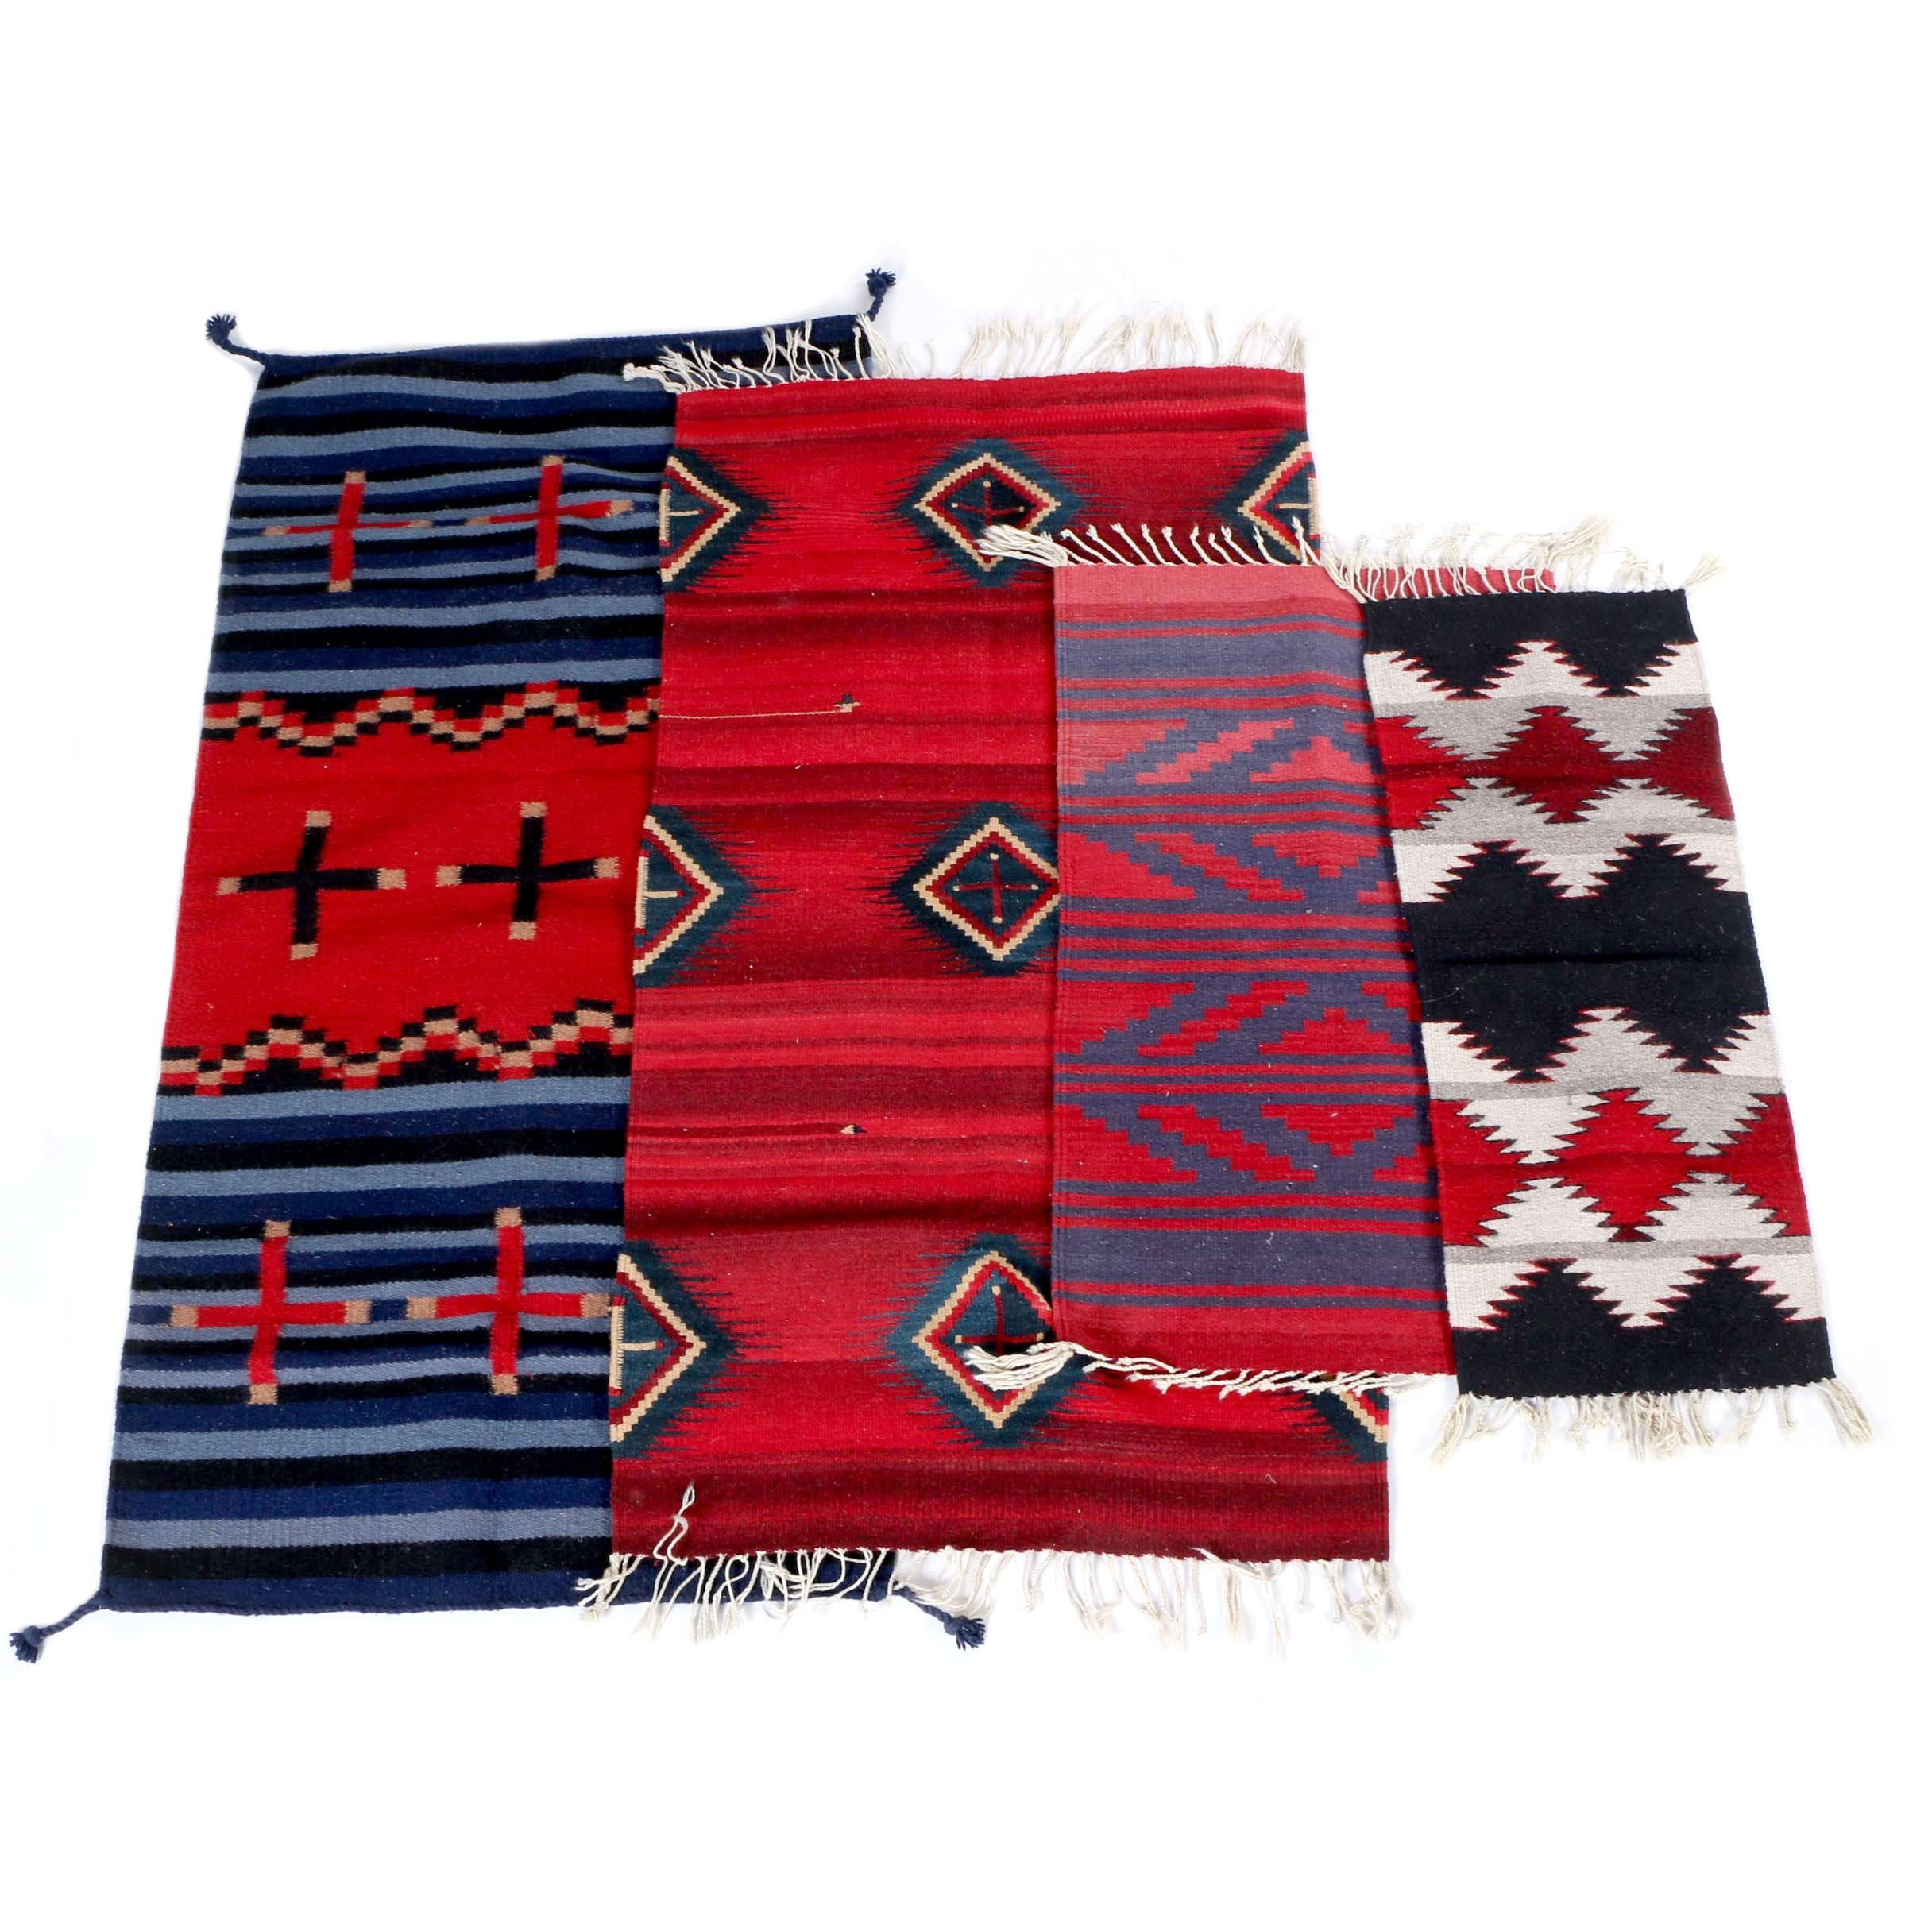 Handwoven Native American Style Rugs Wall Hangings Ebth